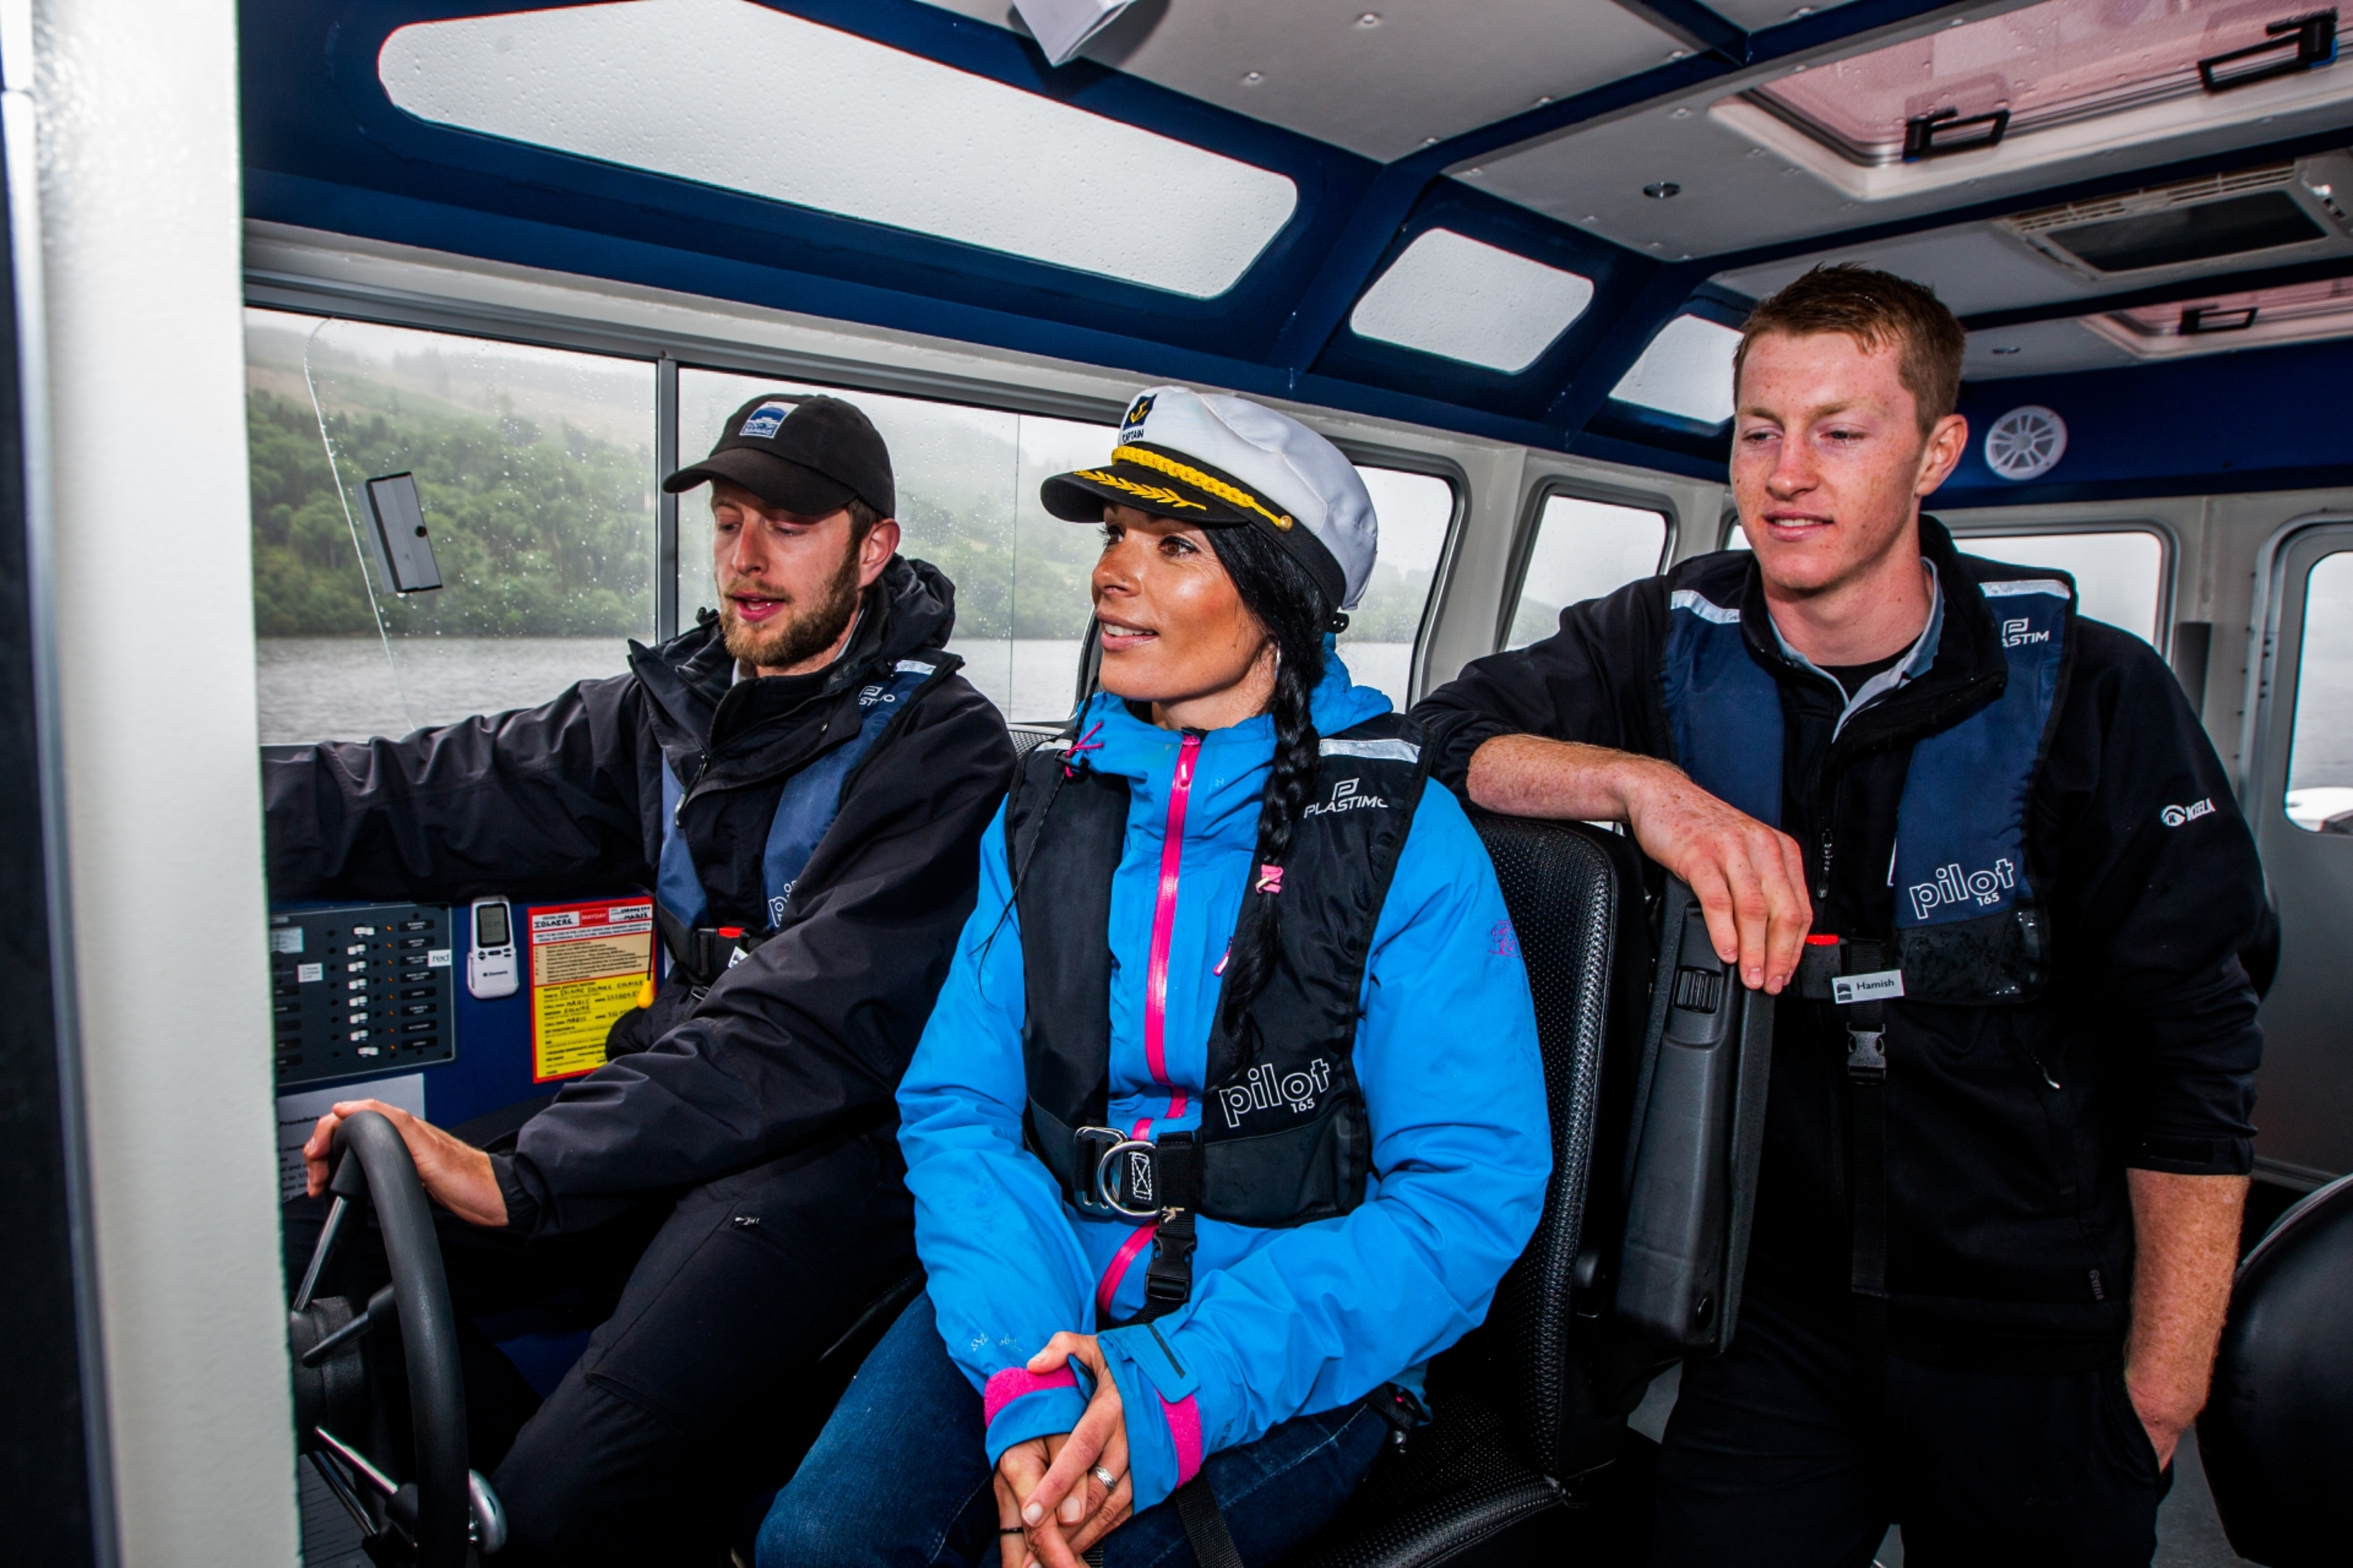 Skipper Alex Martin, Gayle Ritchie and Hamish Brown on board the boat on Loch Tay.